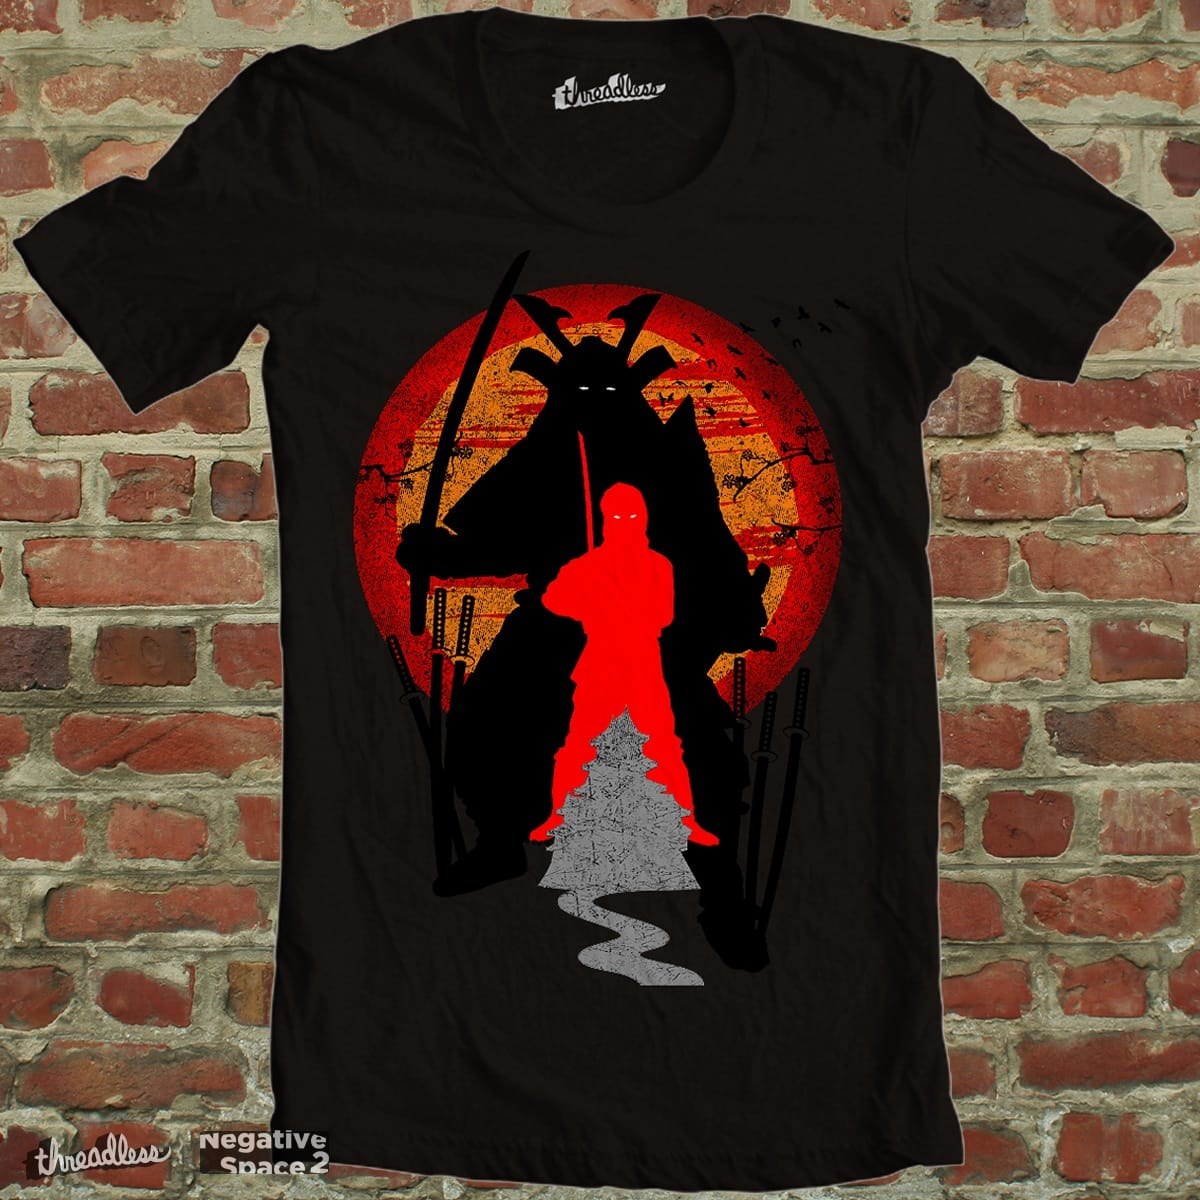 UNDER A BLOOD RED SKY by jrtoyman on Threadless